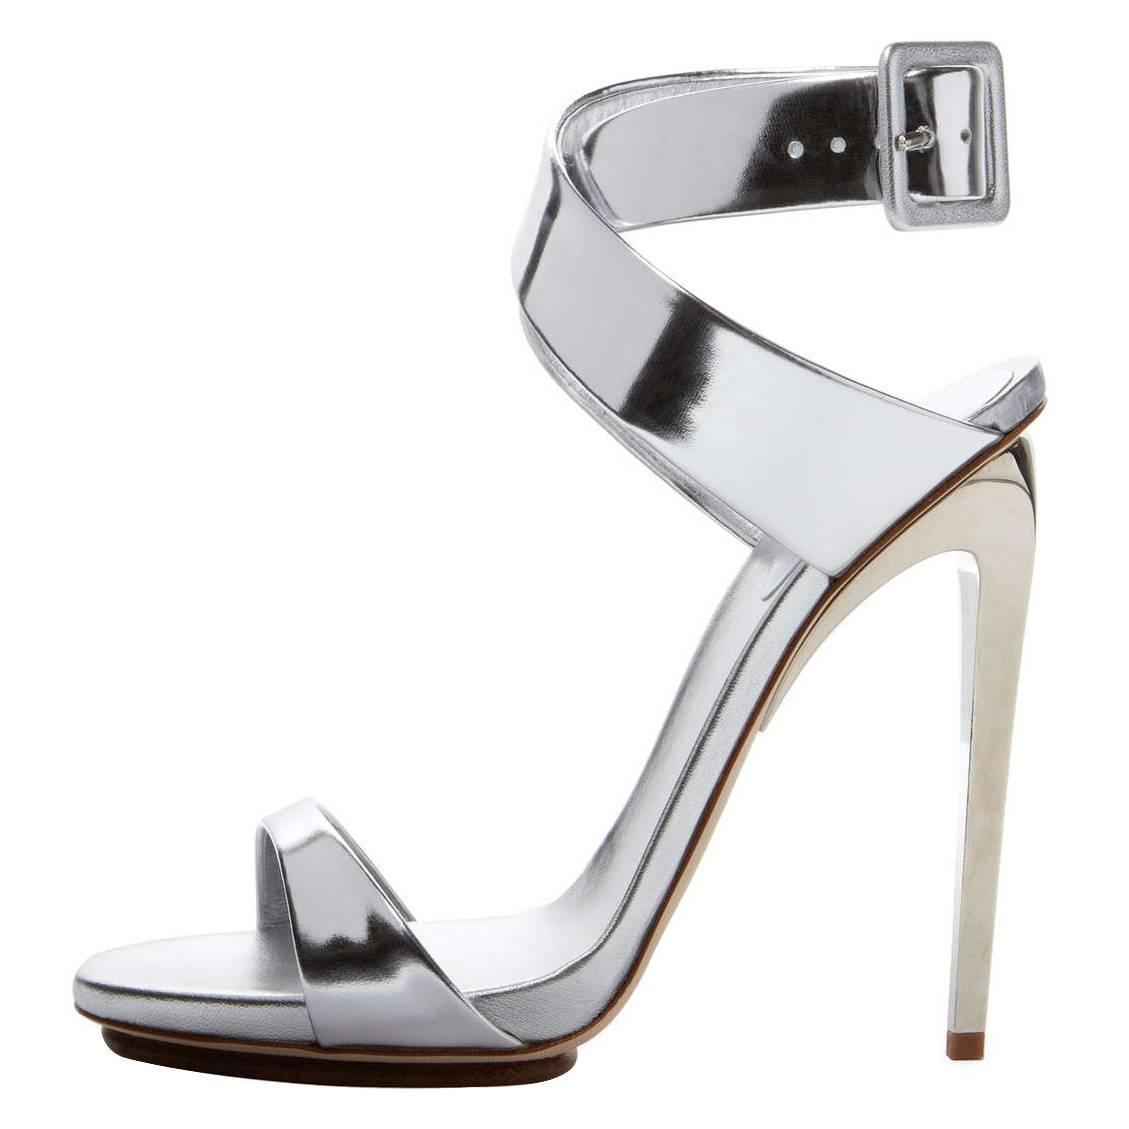 giuseppe zanotti new metallic silver leather strappy high heels sandals in box at 1stdibs. Black Bedroom Furniture Sets. Home Design Ideas